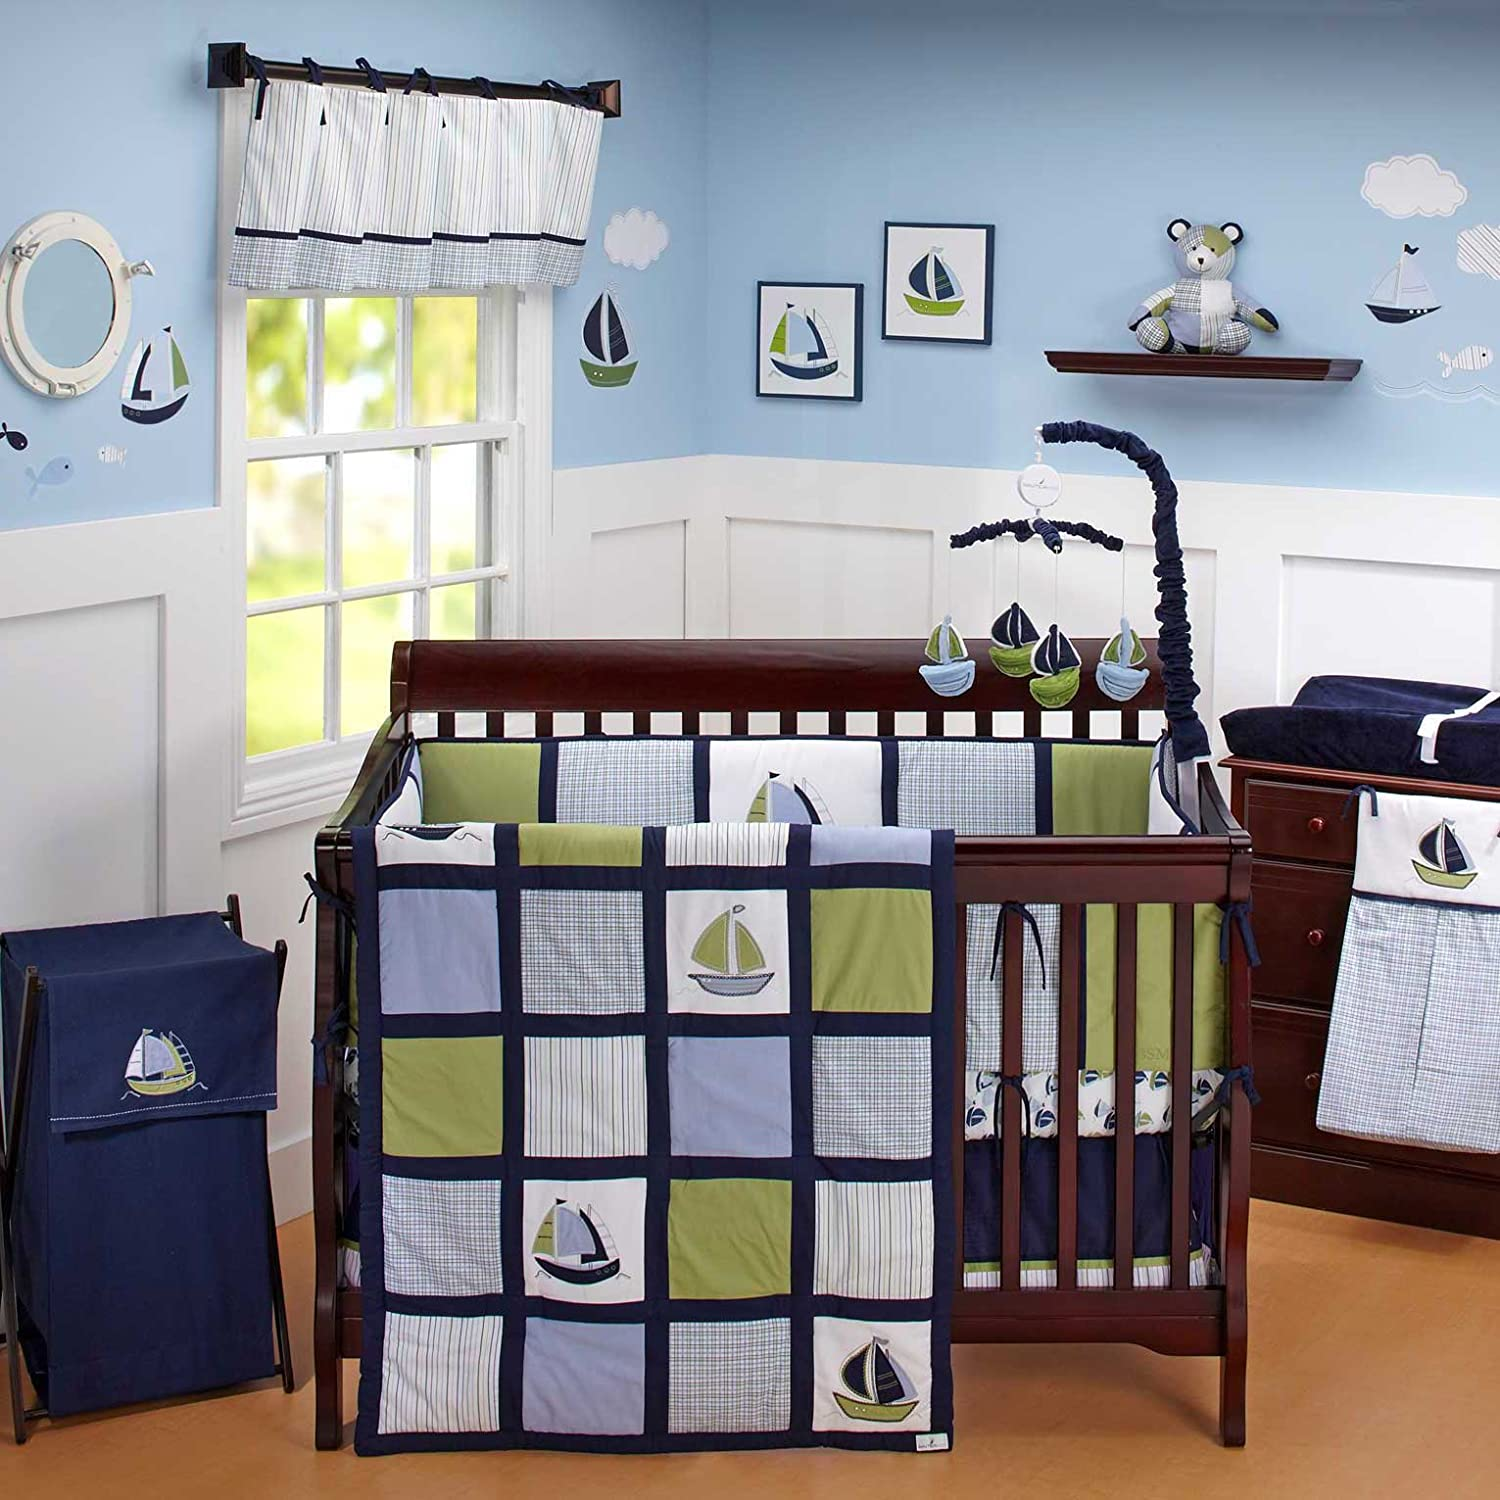 Nautical baby bedding sets - Amazon Com Zachary 7 Piece Baby Crib Bedding Set With Bumper By Nautica Kids Nautica Kids Zachary Fitted Crib Sheet Baby